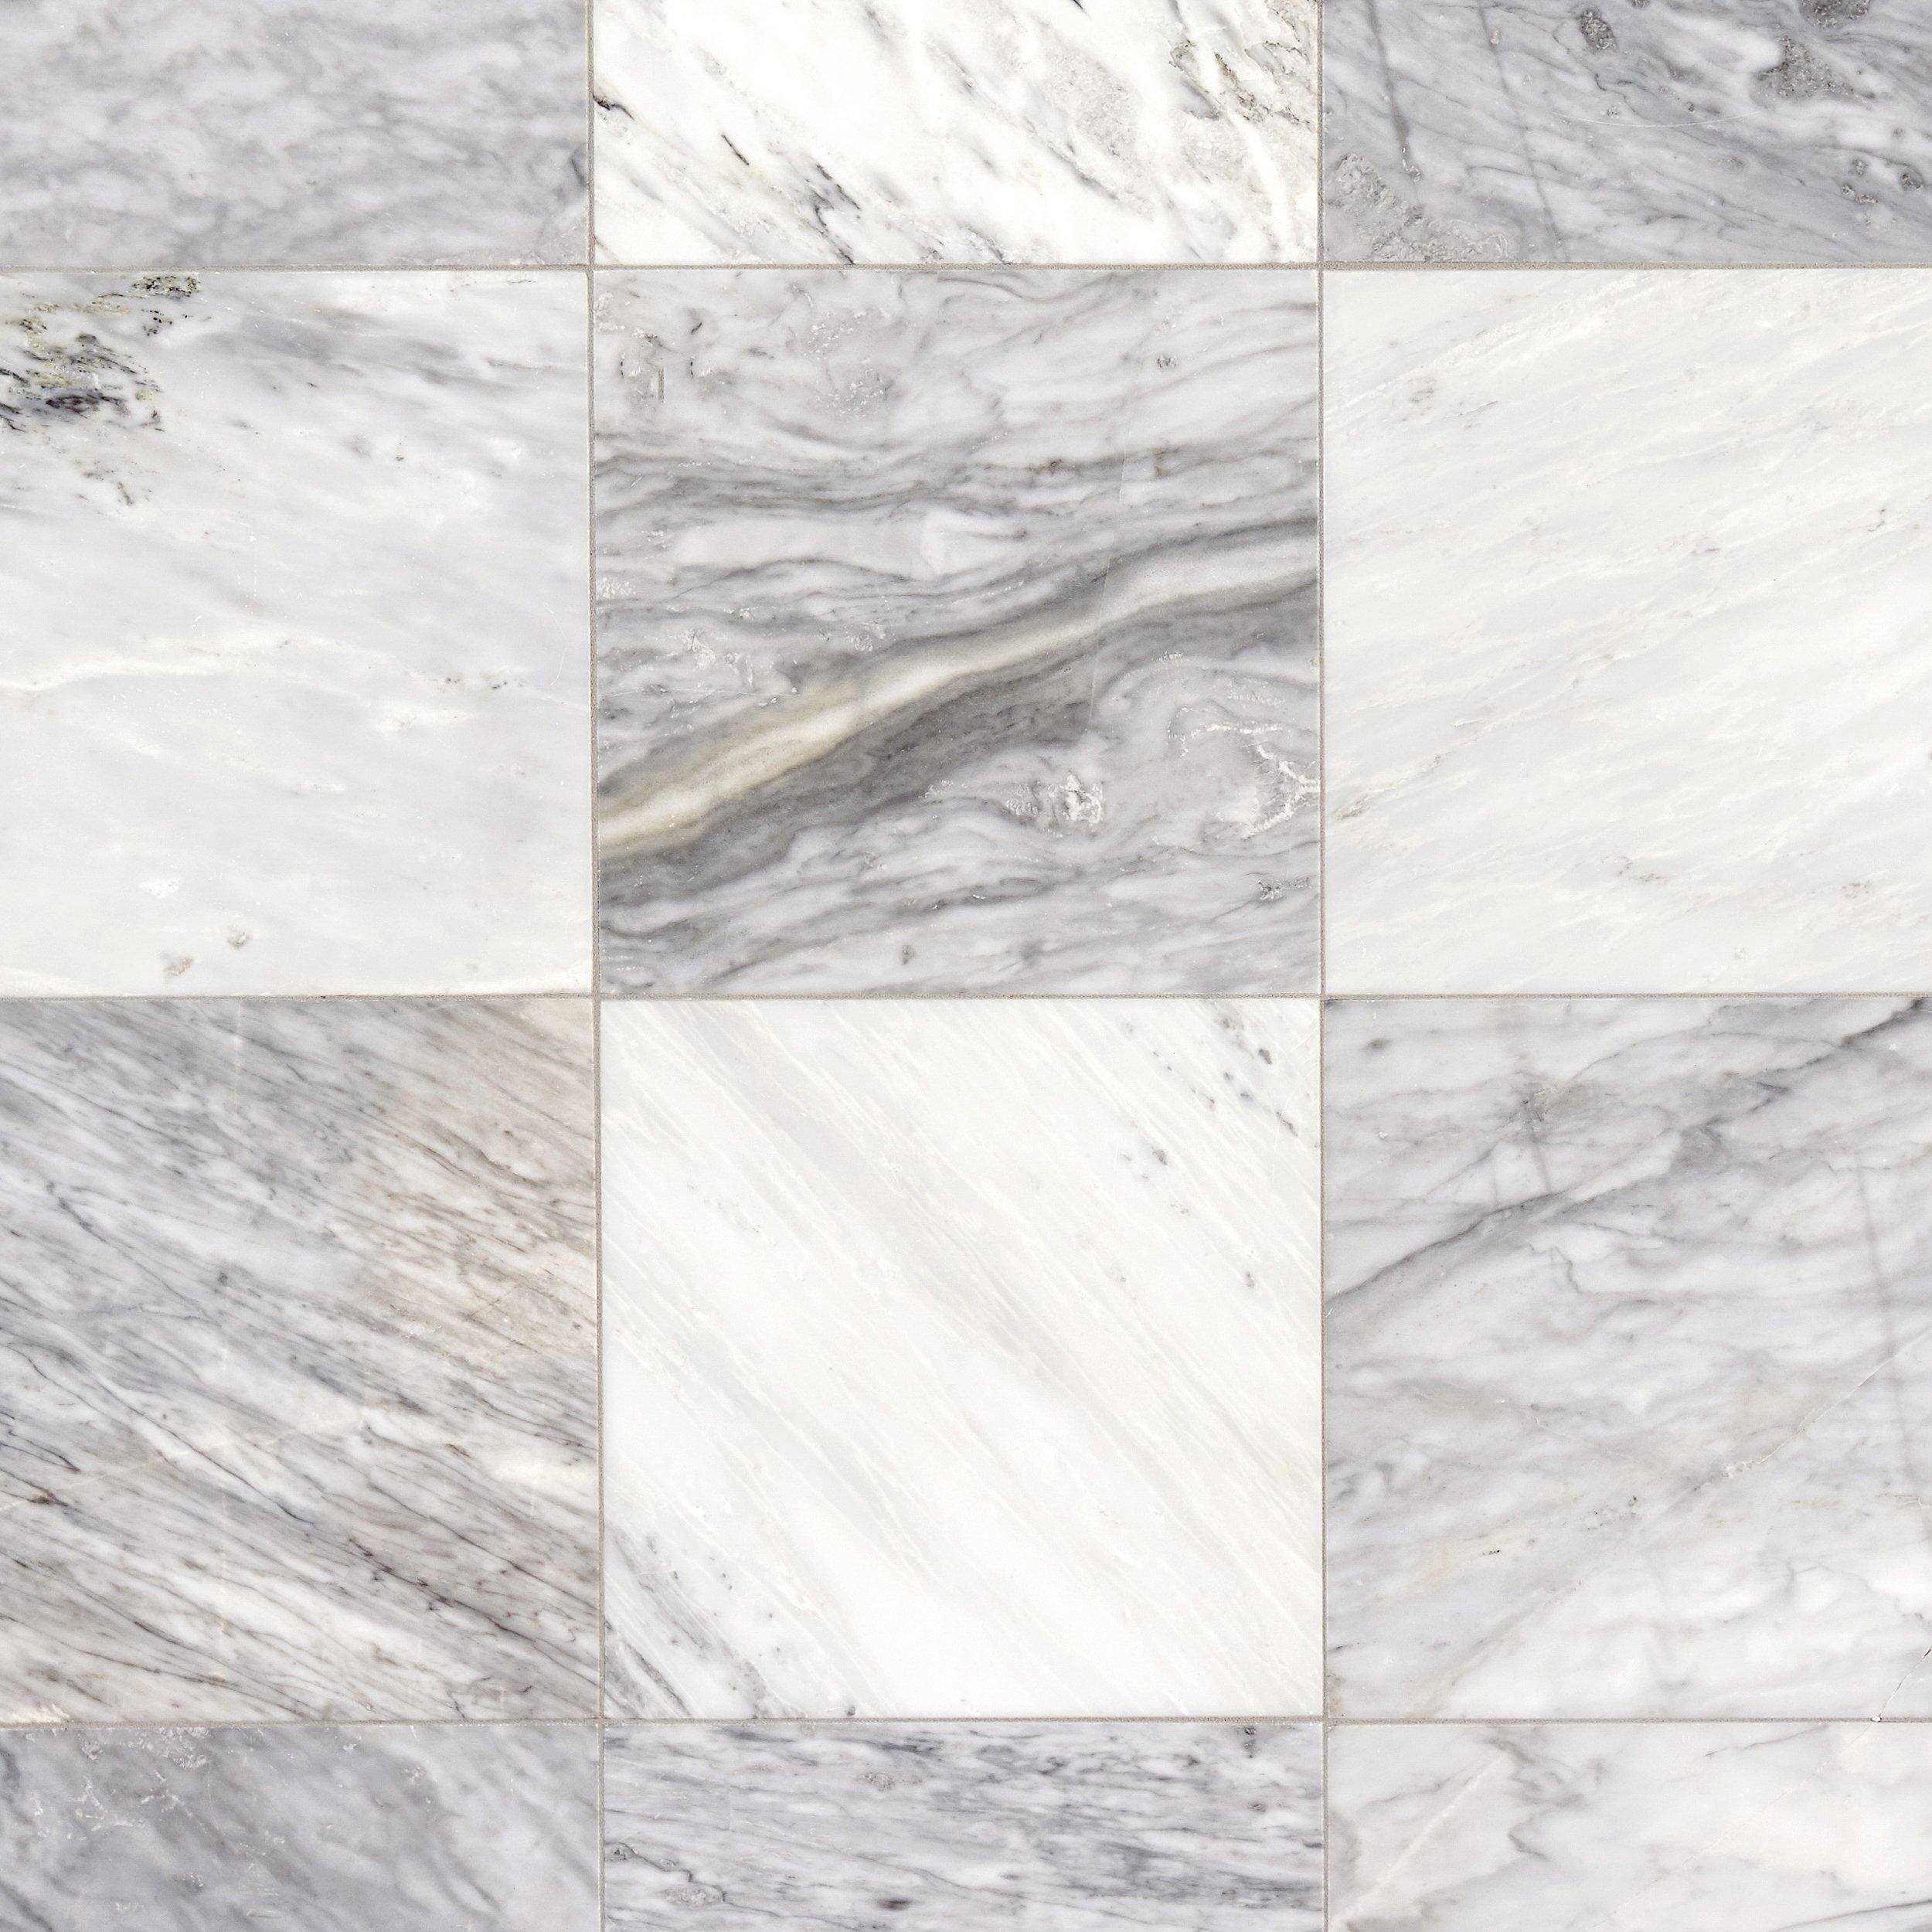 Carrara White Honed Marble Tile Floor Decor In 2020 Honed Marble Tiles Honed Marble Marble Tile Floor